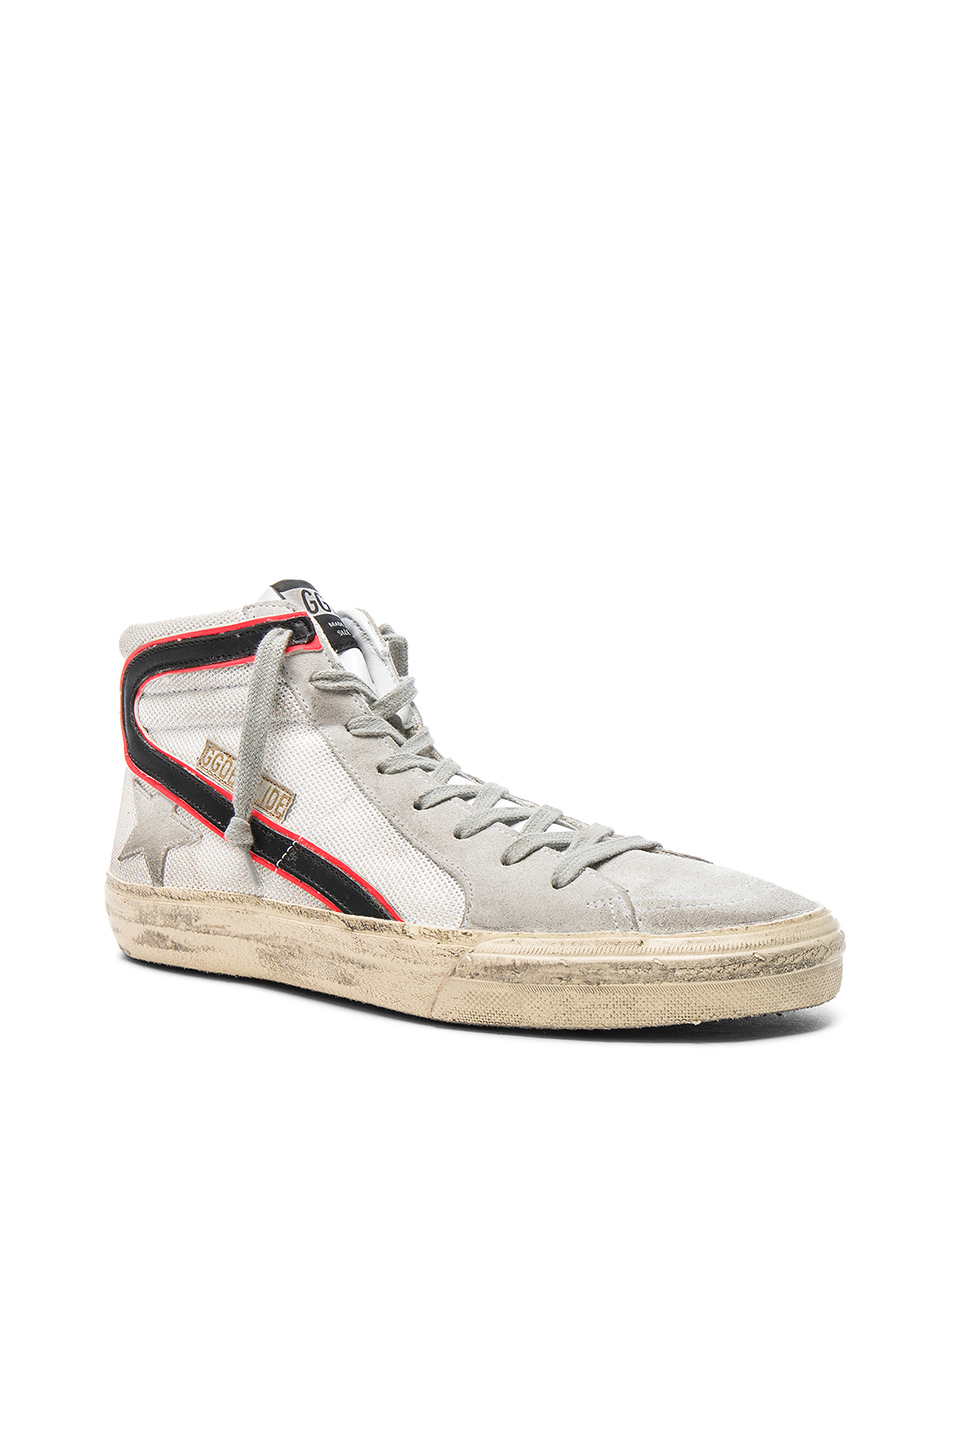 Golden Goose Mesh Slide Sneakers in White